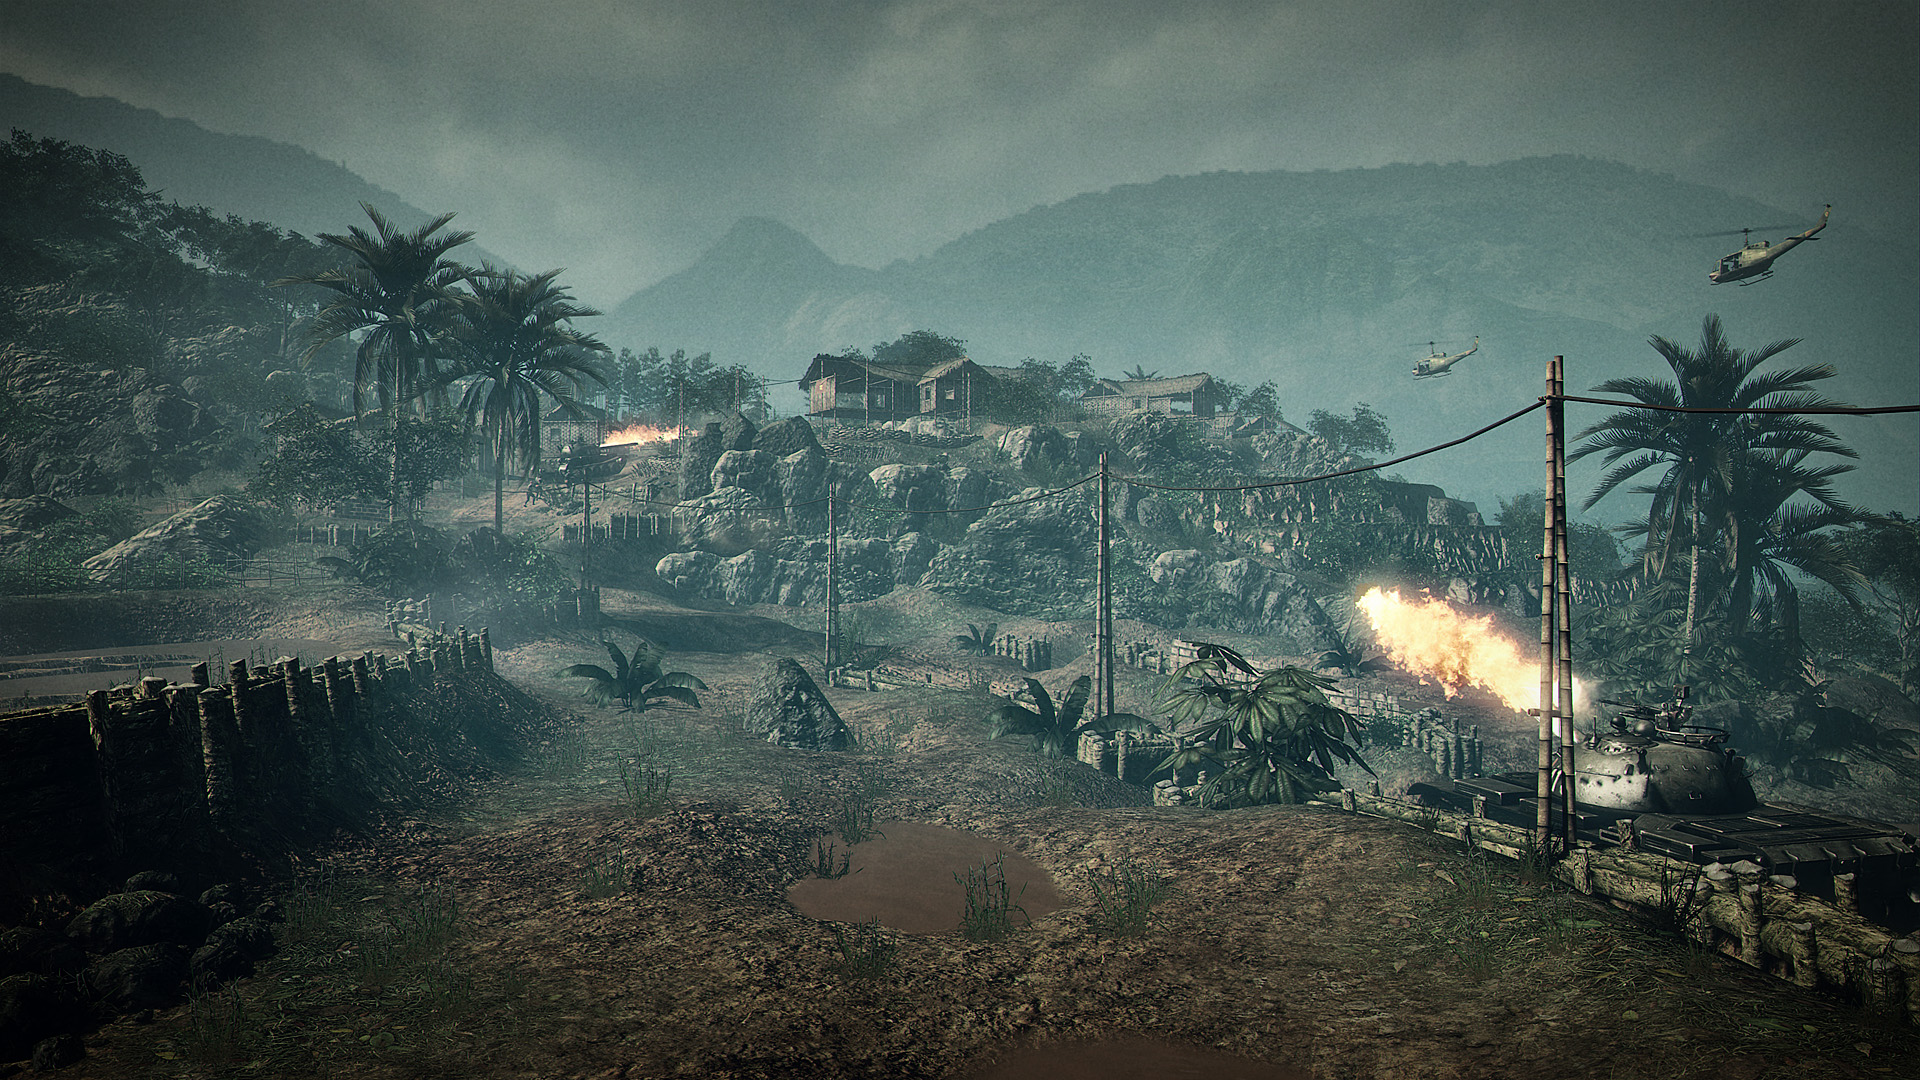 Battlefield: Vietnam - Vantage Point 03 (Wallpaper 1920 x 1080)